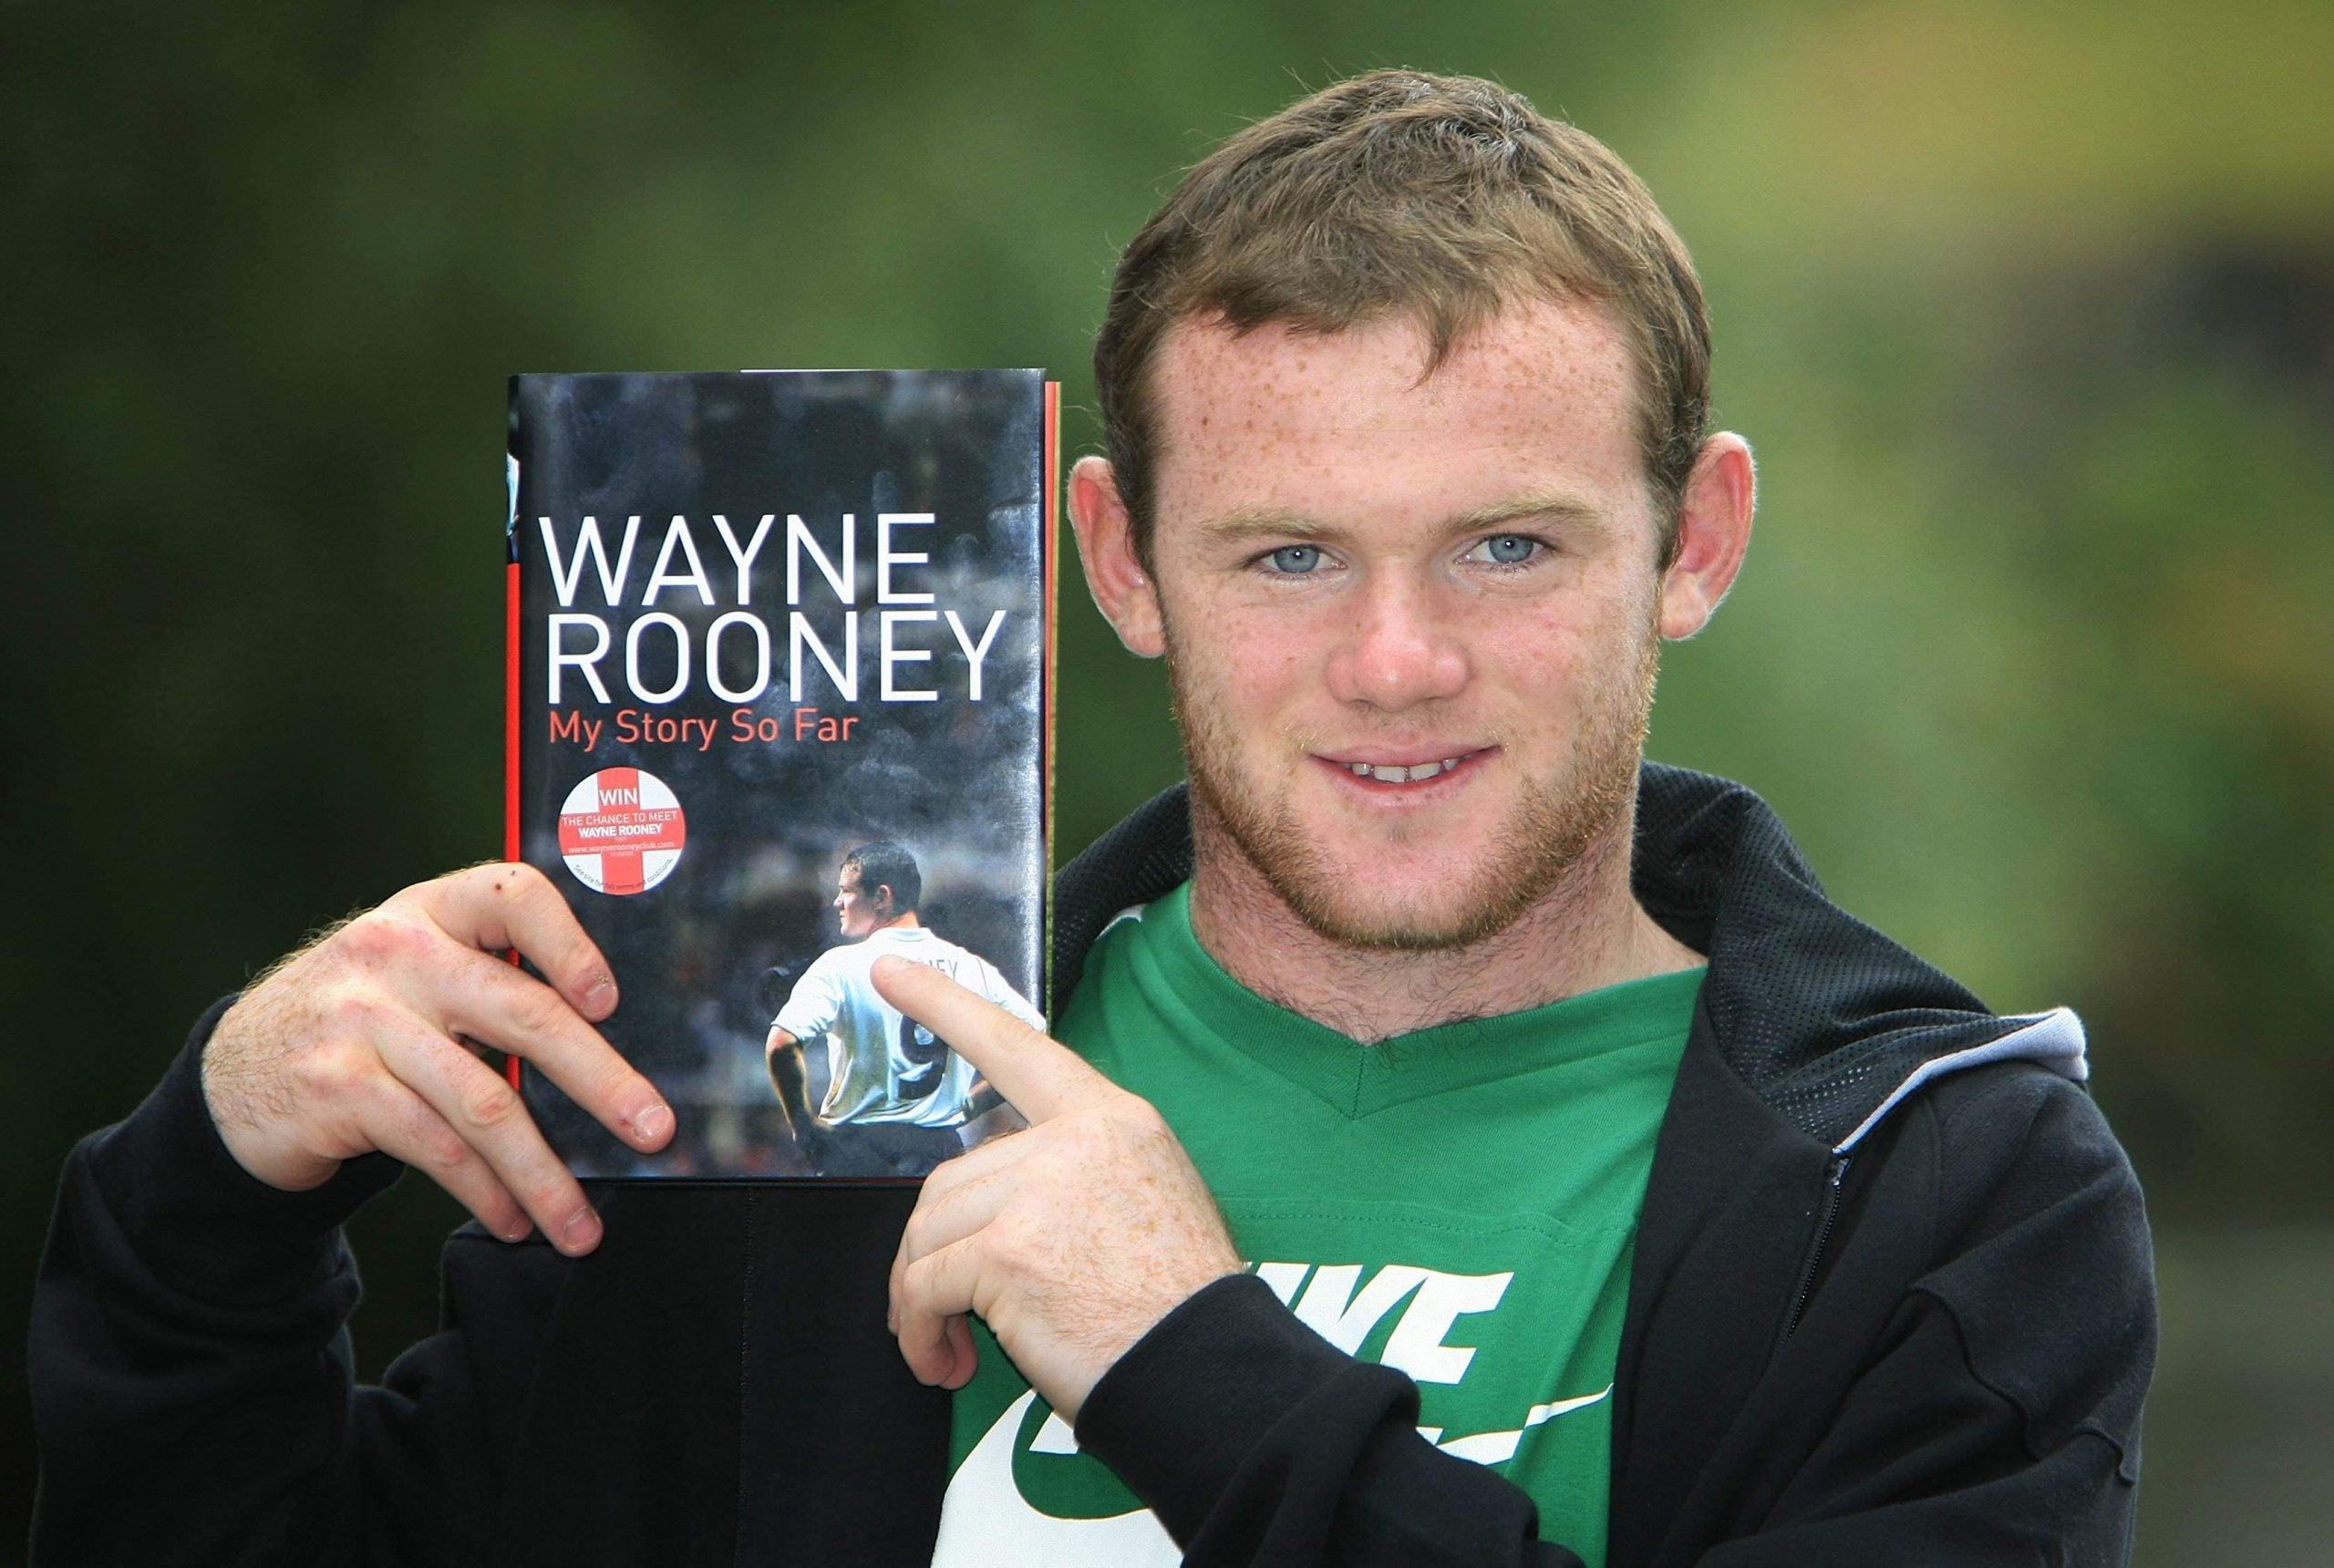 To everything, there is a season – as Wayne Rooney is discovering